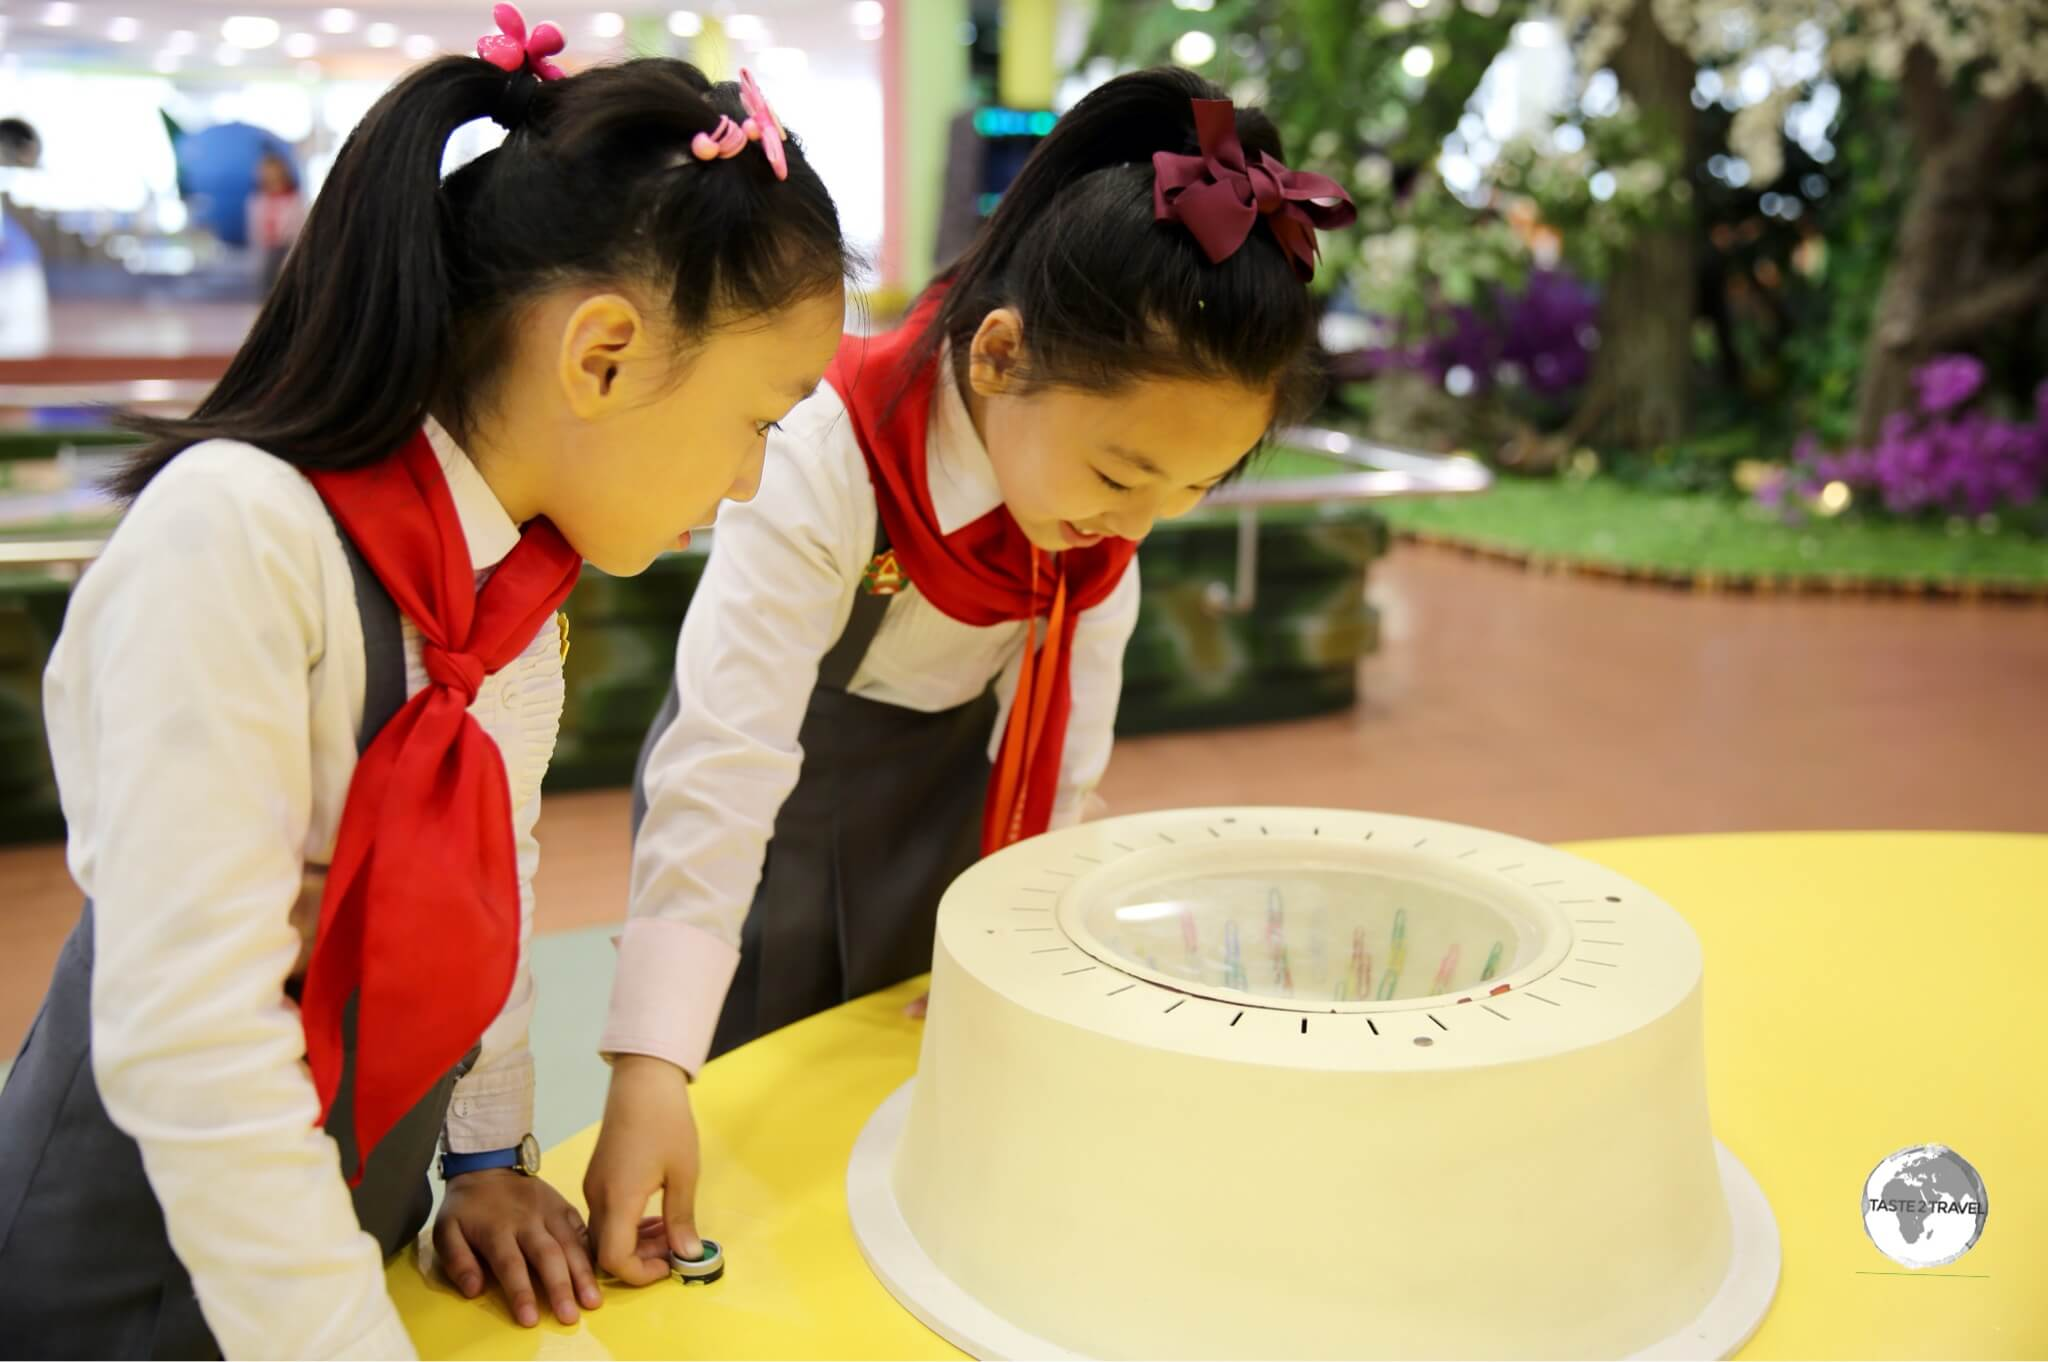 School girls playing with an interactive exhibit at the Science & Technology centre in Pyongyang.